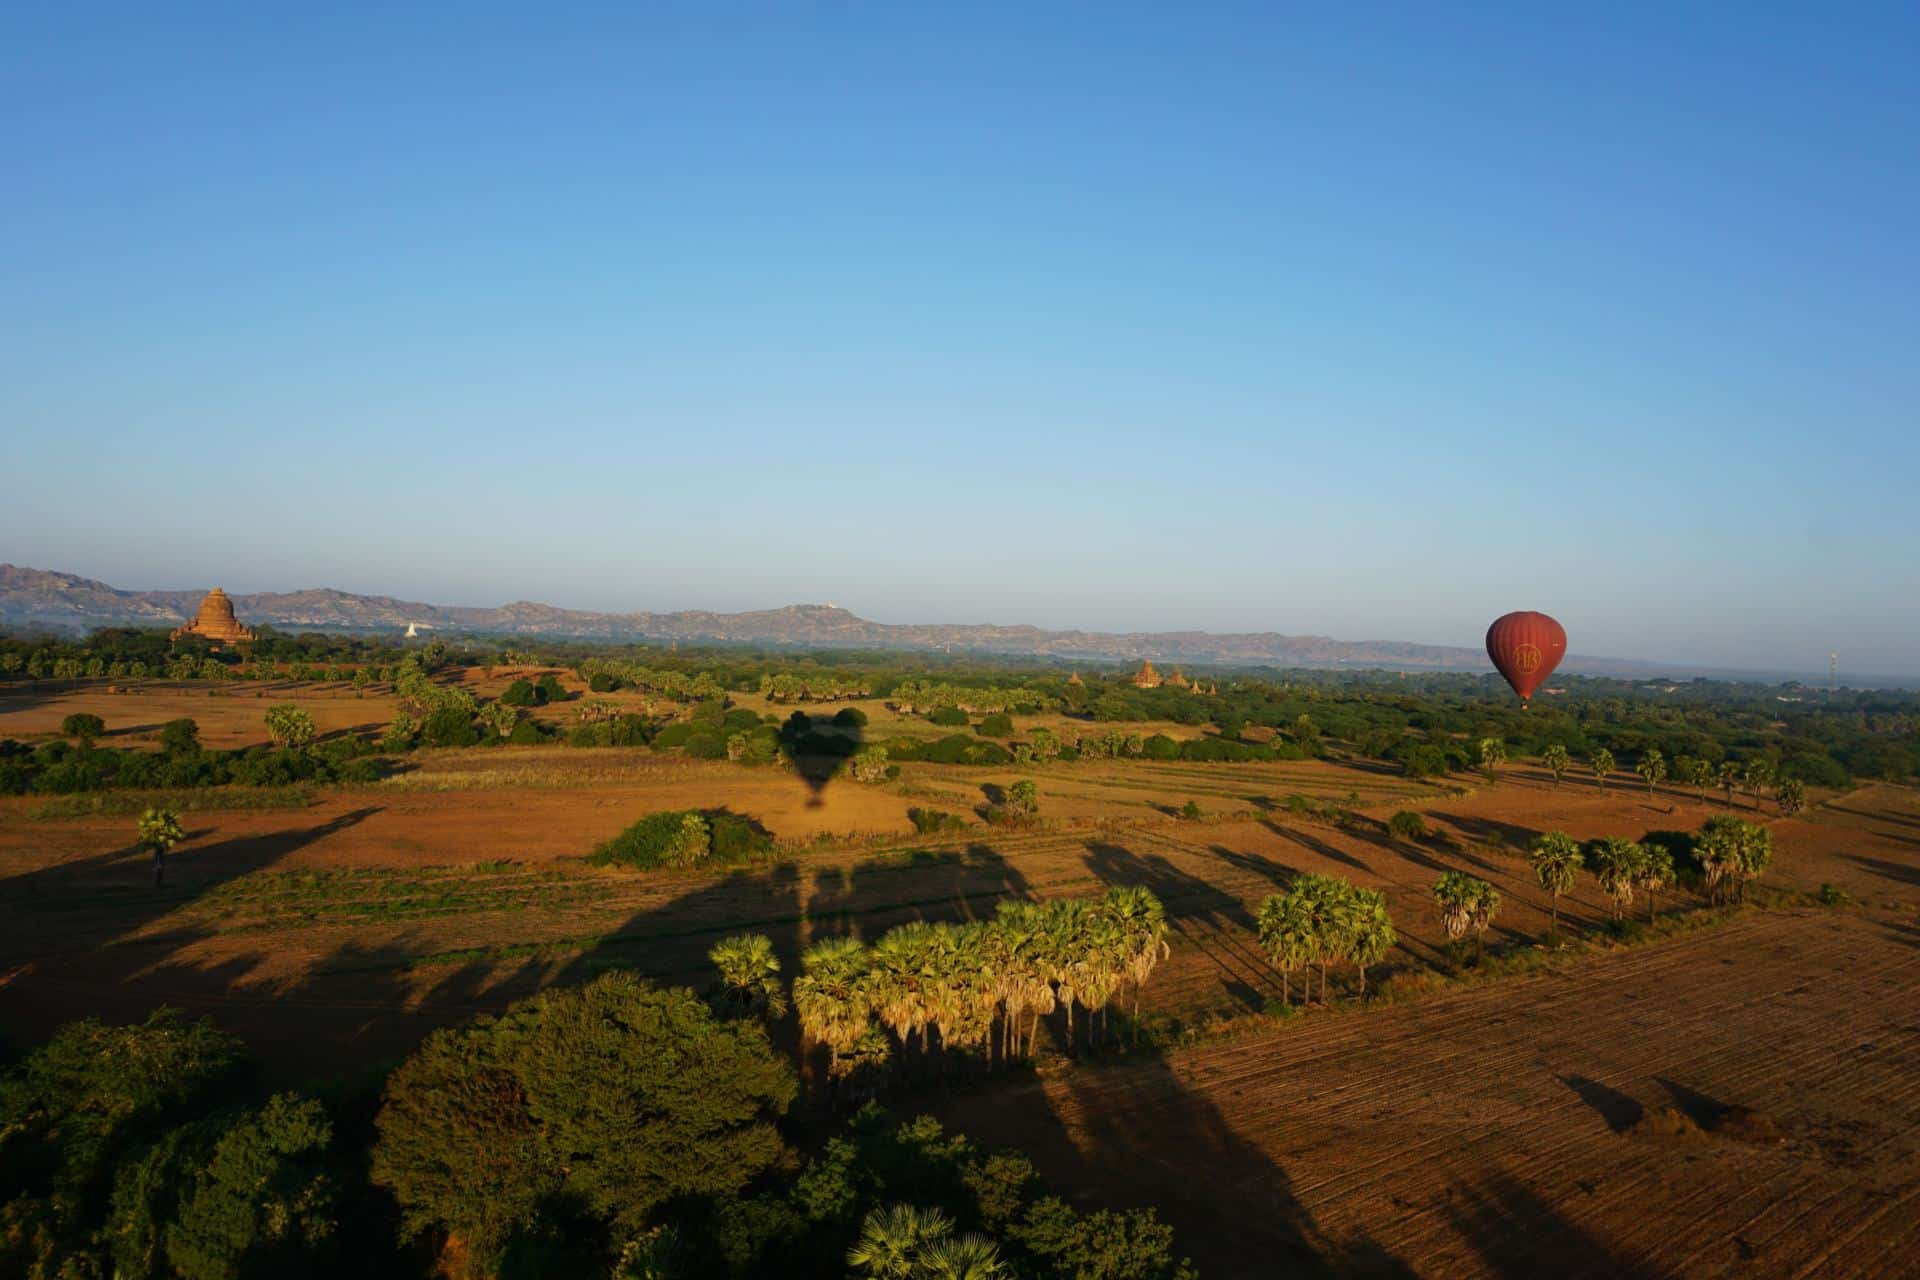 Balloons over Bagan- Ballonflug Bagan